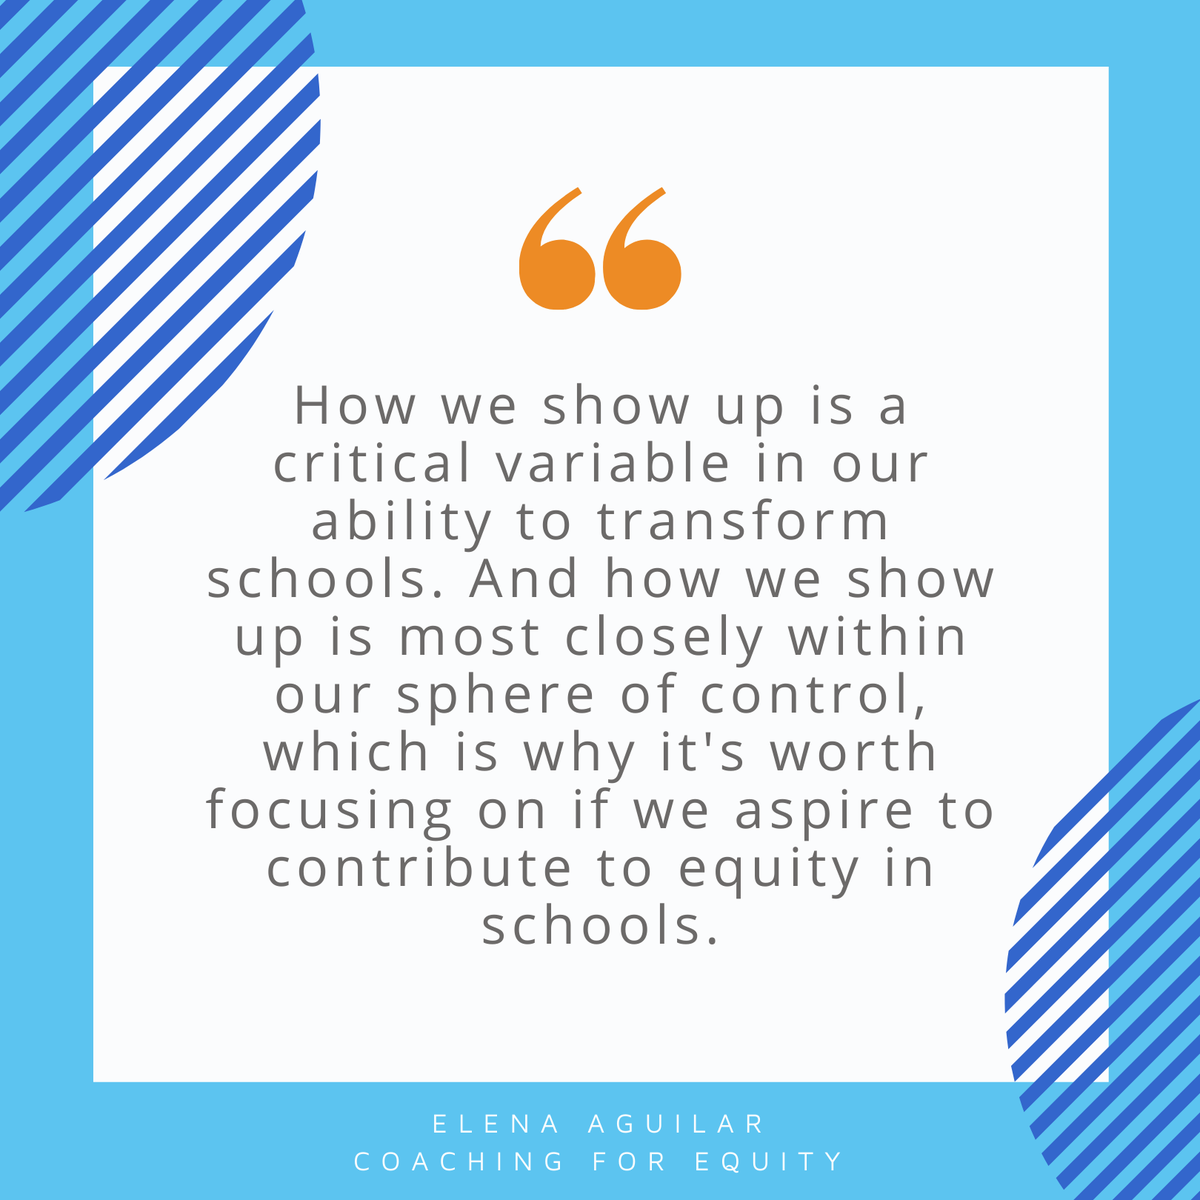 What do you do to ensure you're showing up the way you want to for your students and teachers?